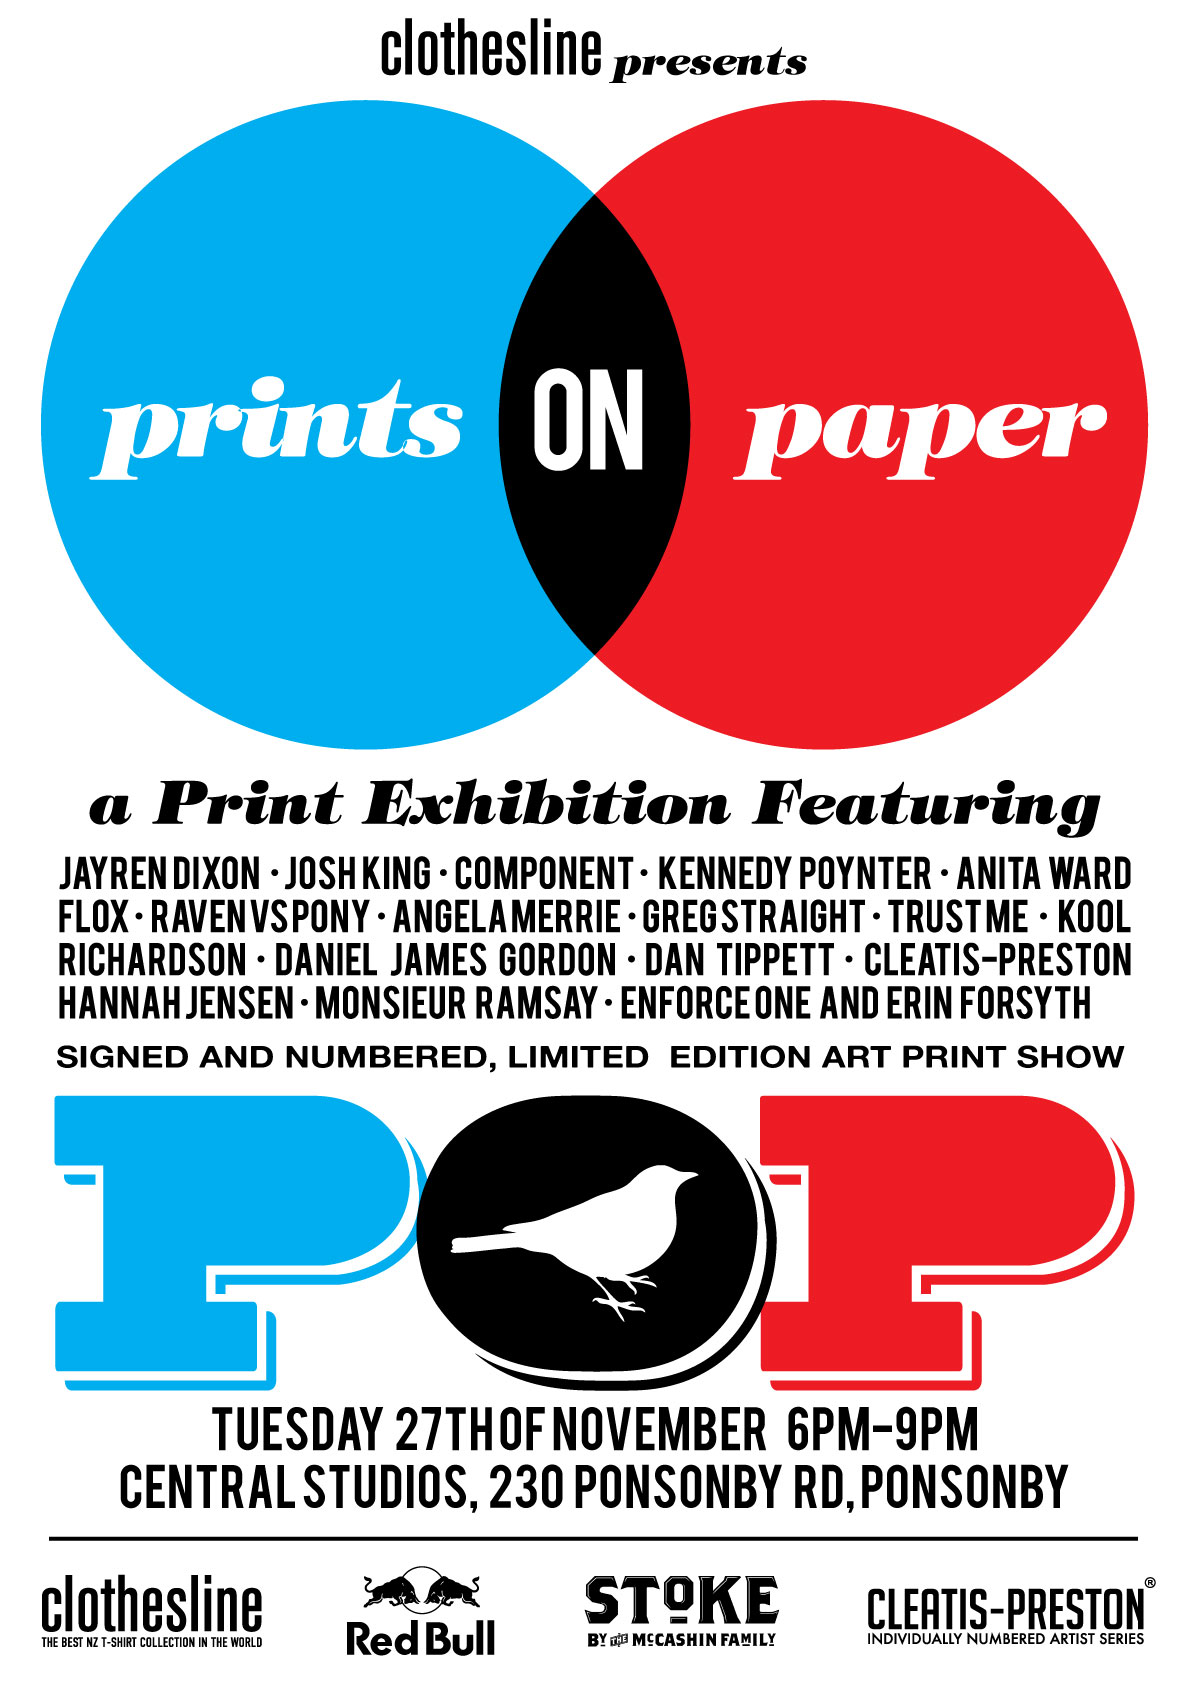 If your in Auckland on the 27th come check out the Prints On Paper show, featuring work from some amazing artists. I will be contributing 4 new A2 prints, all screenprinted by hand.